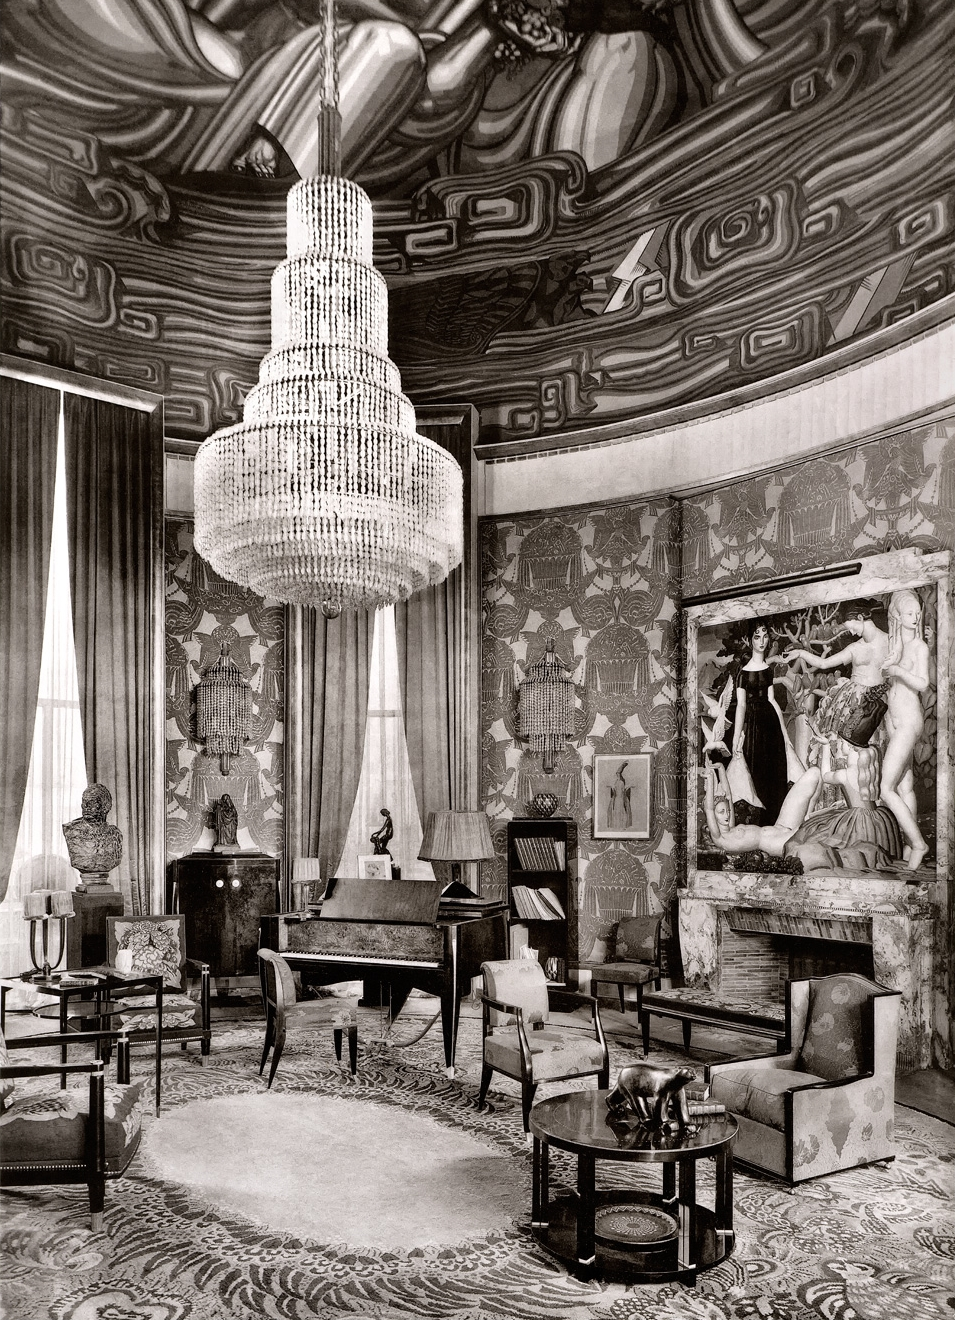 Ruhlmann's Grand Salon exhibit at the 1925 Paris Exposition Internationale des Arts Decoratifs et Industriels Modernes